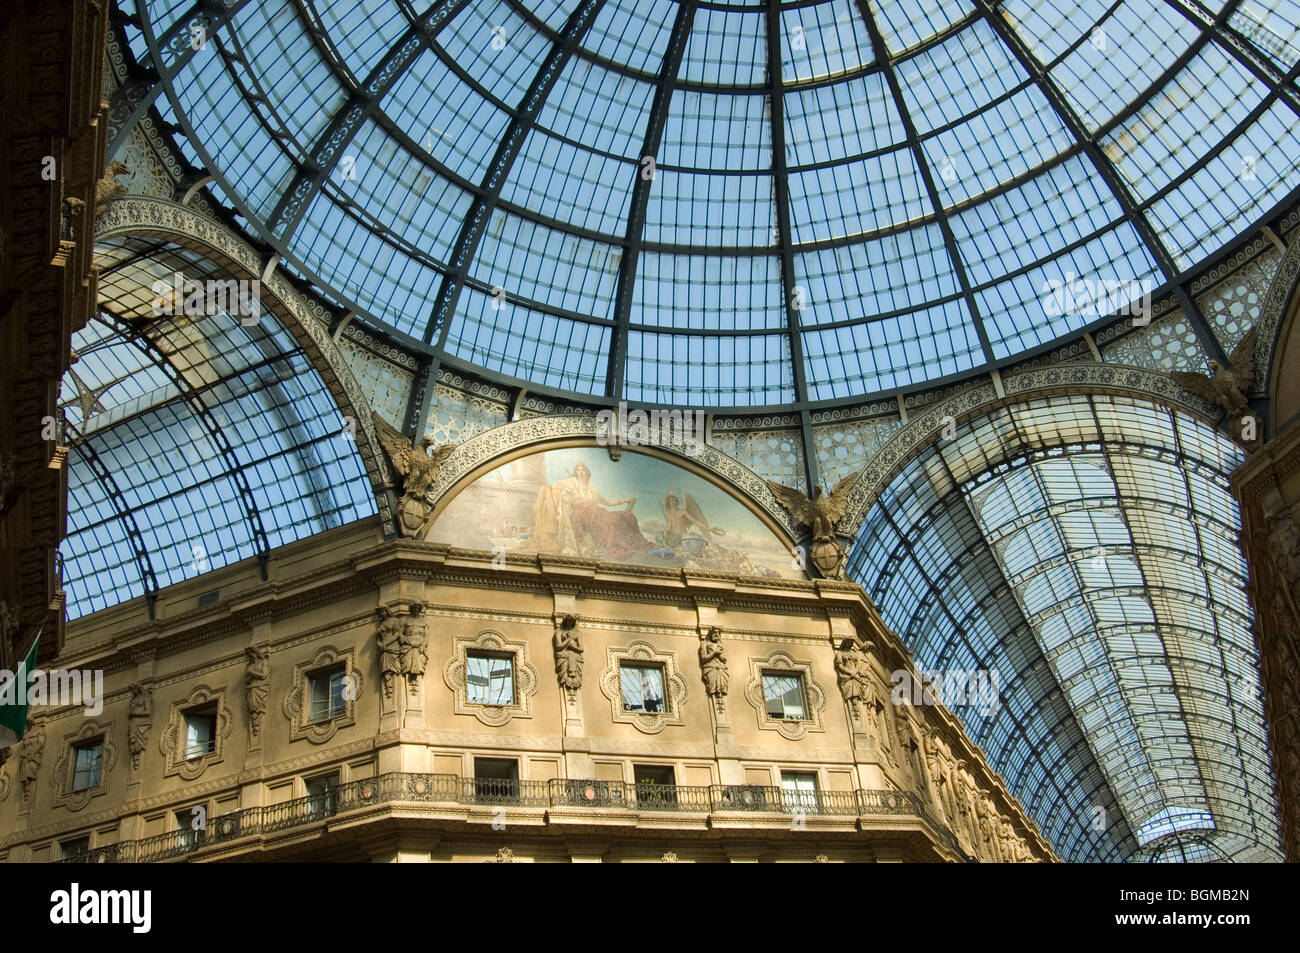 The glass roof of the Galleria in Piazza Duomo Milan - Stock Image